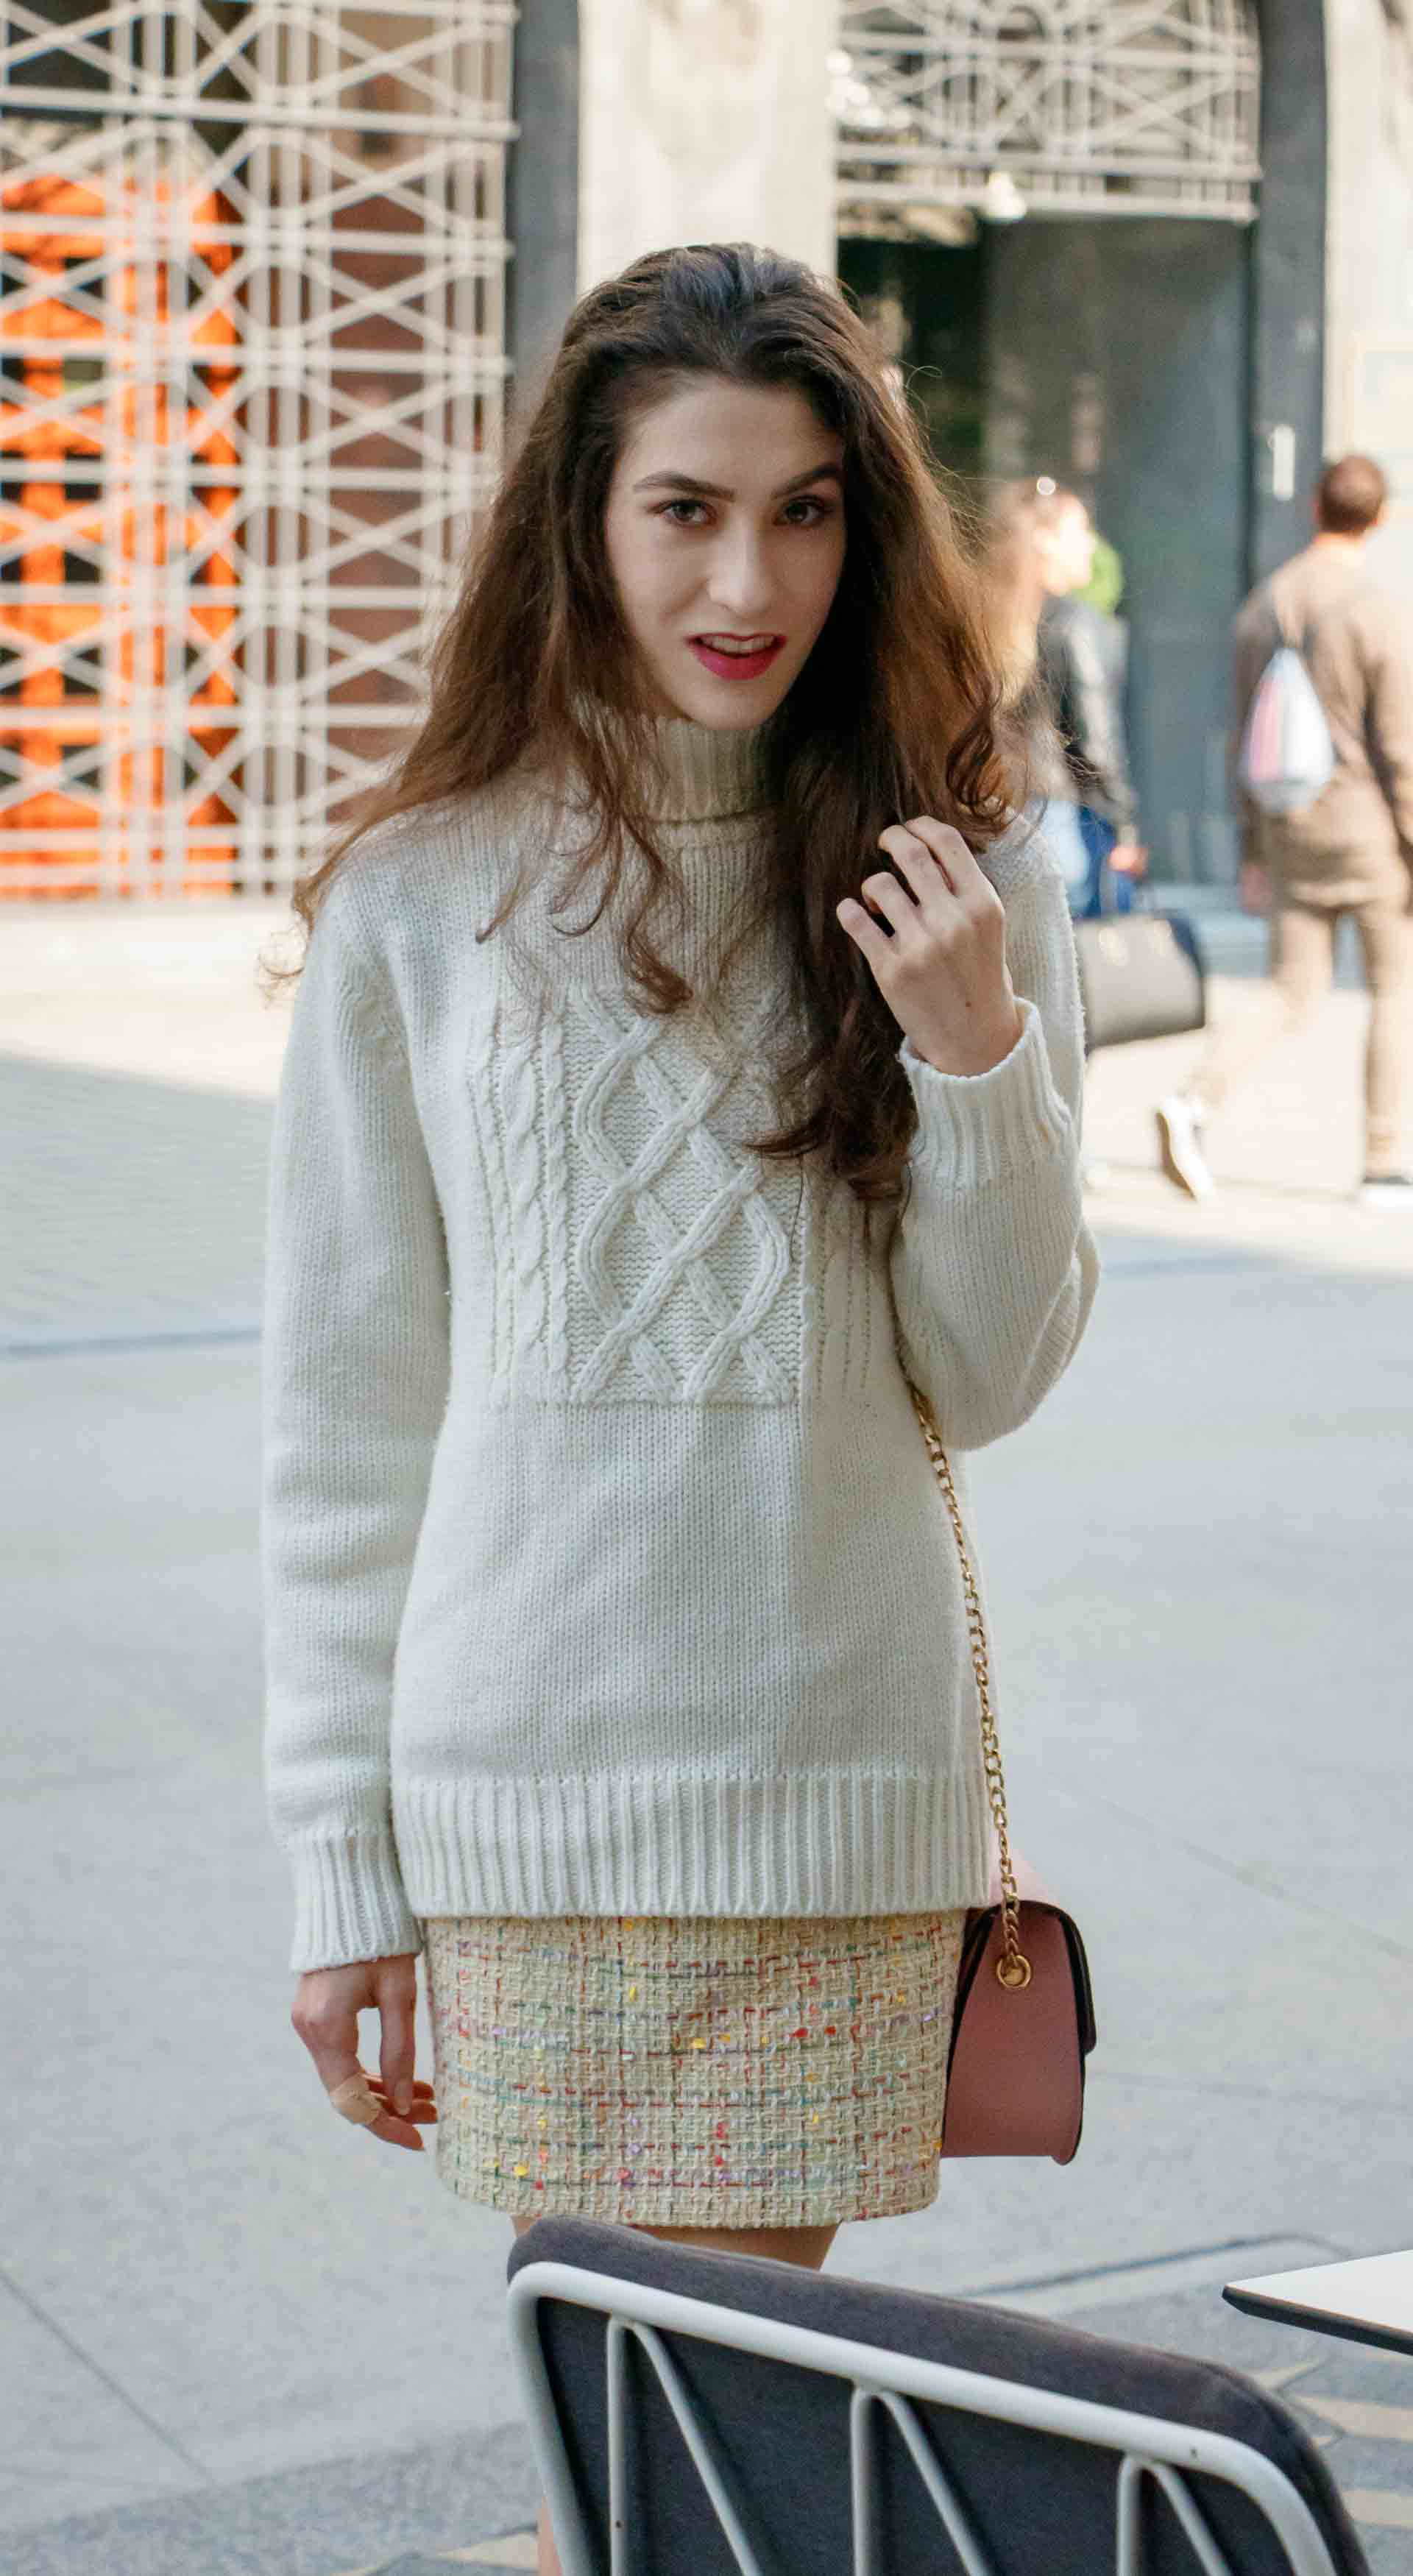 Beautiful Slovenian Fashion Blogger Veronika Lipar of Brunette from Wall wearing yellow tweed skirt, white turtleneck sweater, chain strap shoulder bag for fall brunch